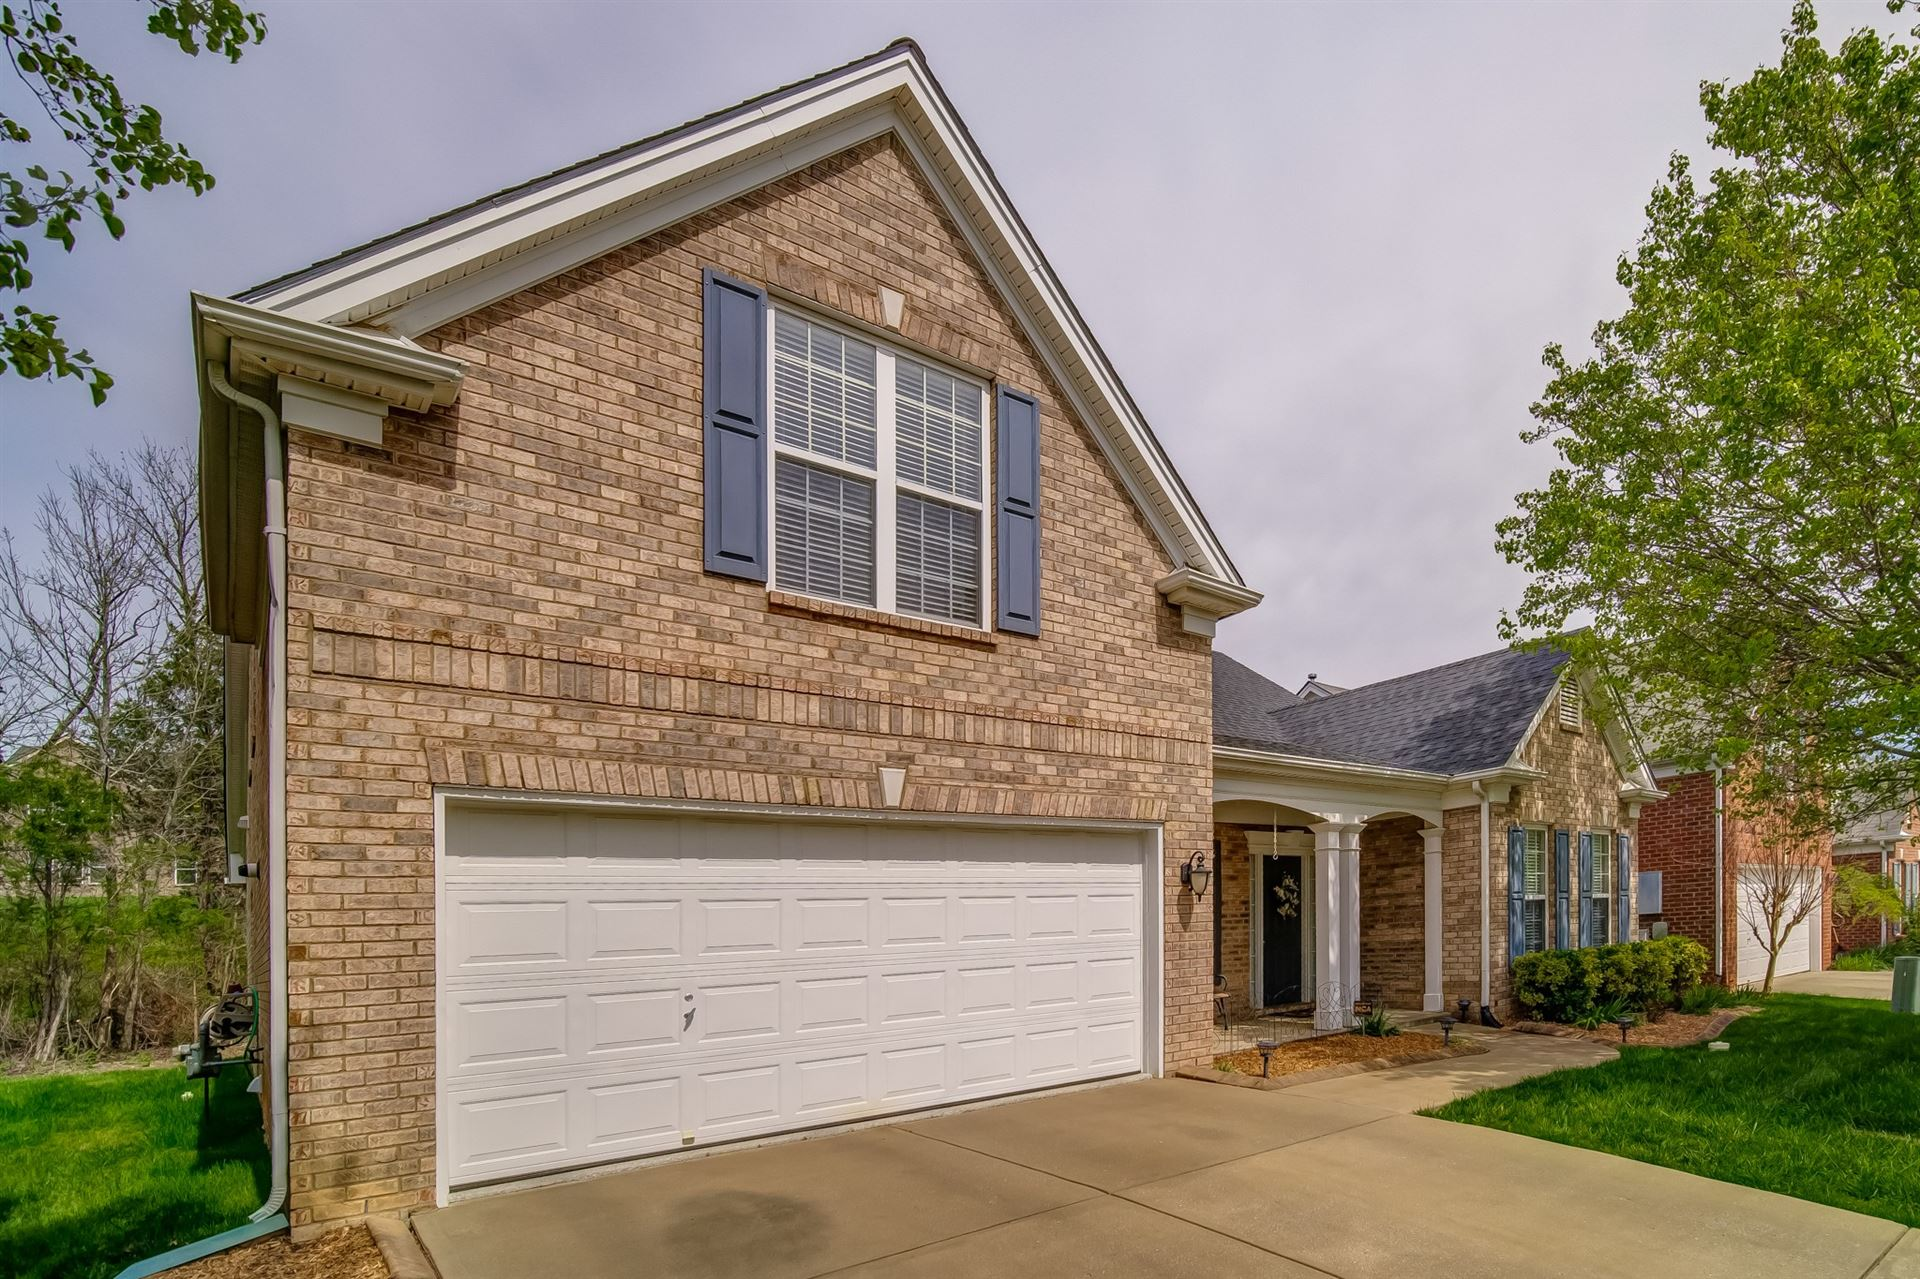 Photo of 9790 Jupiter Forest Dr, Brentwood, TN 37027 (MLS # 2137797)